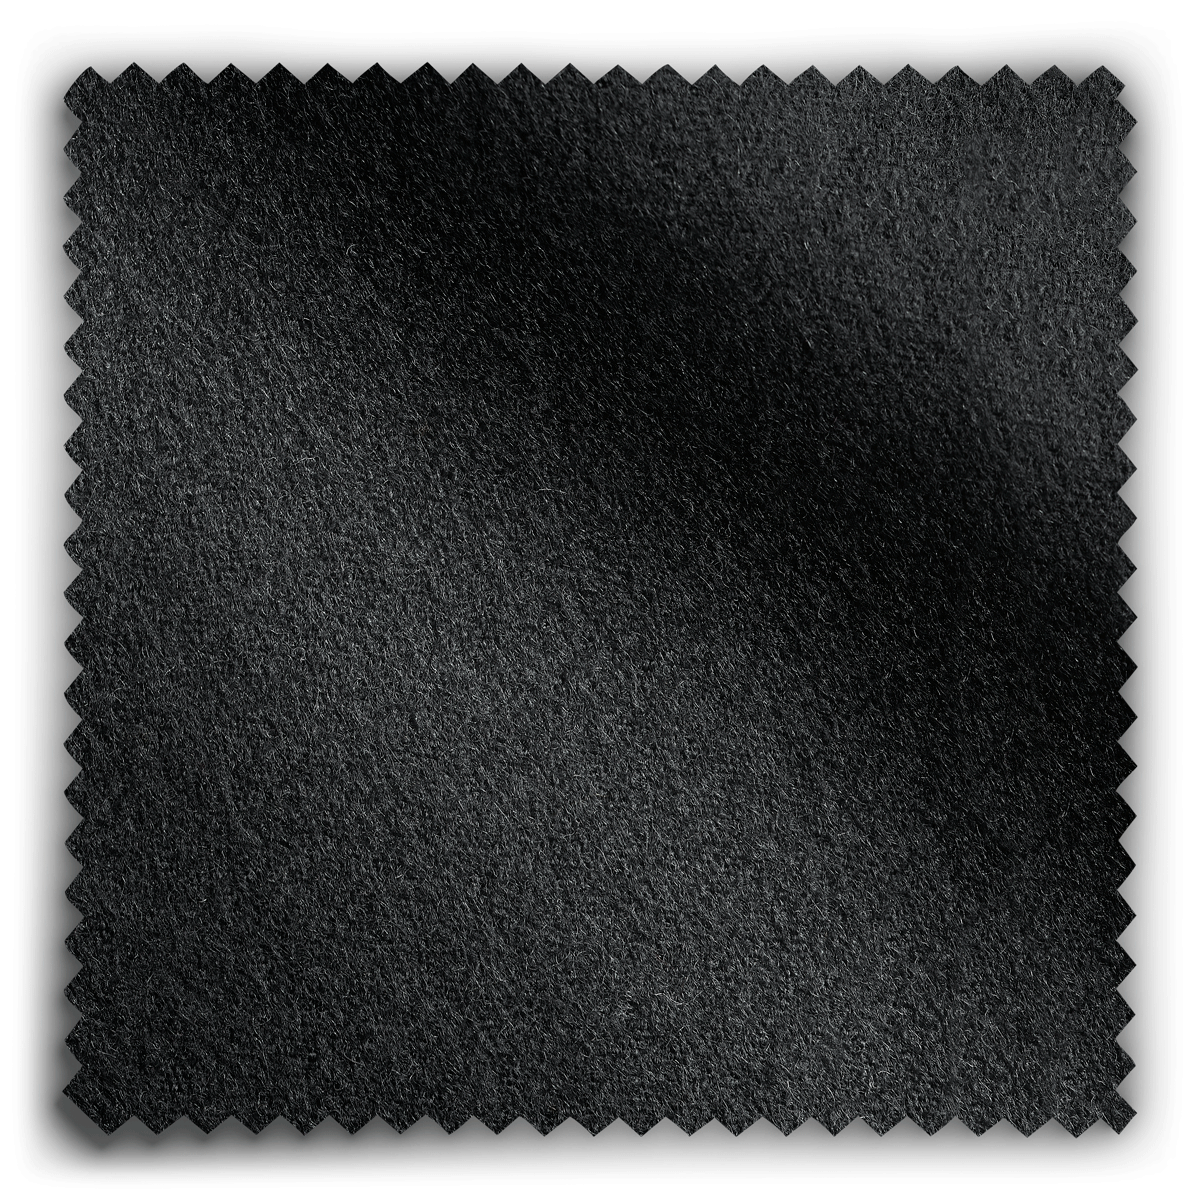 Image of Relaxed Wool Charcoal fabric